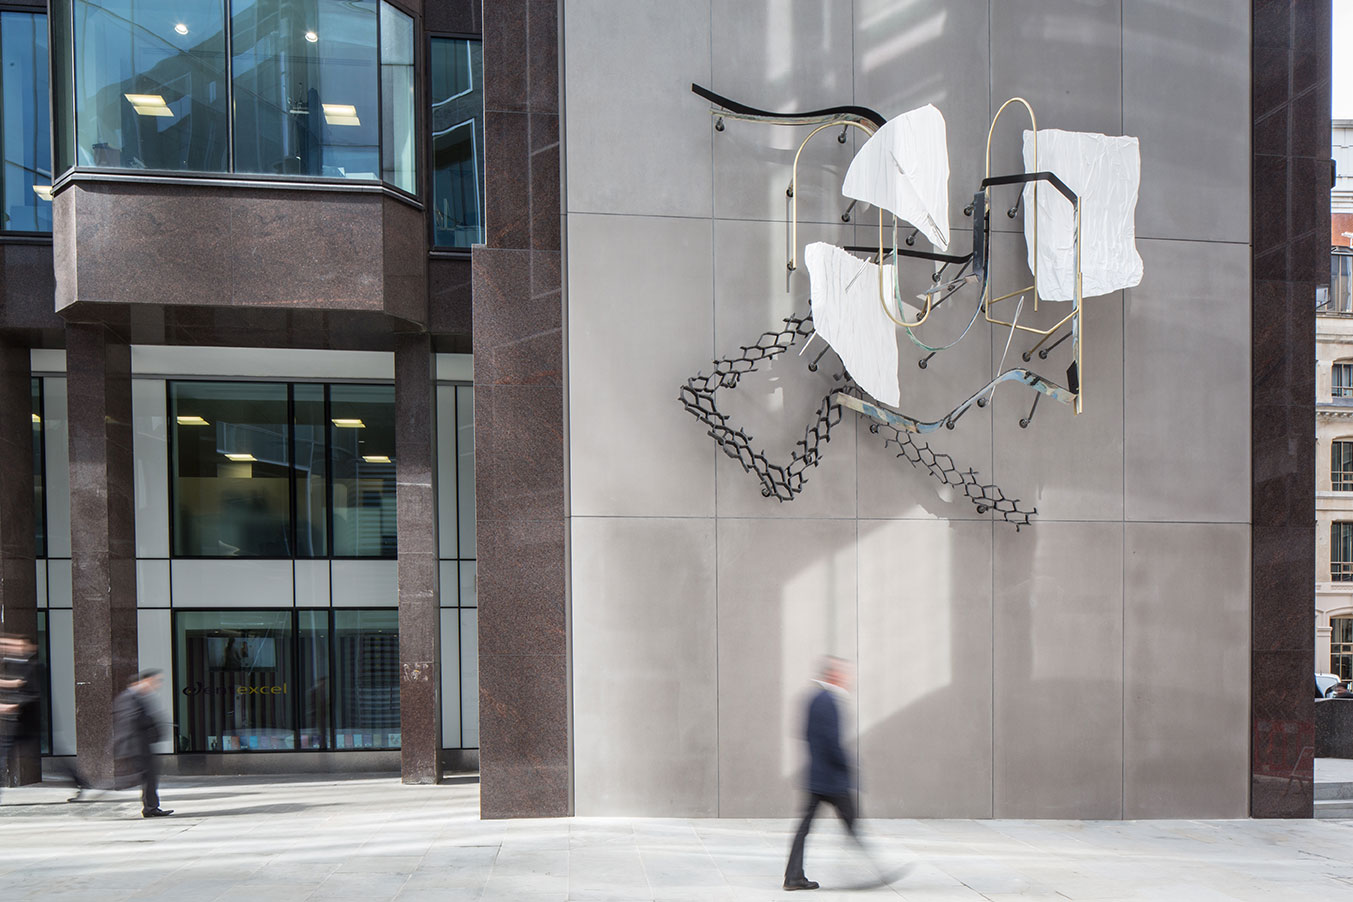 Angel Court Sculpture, London